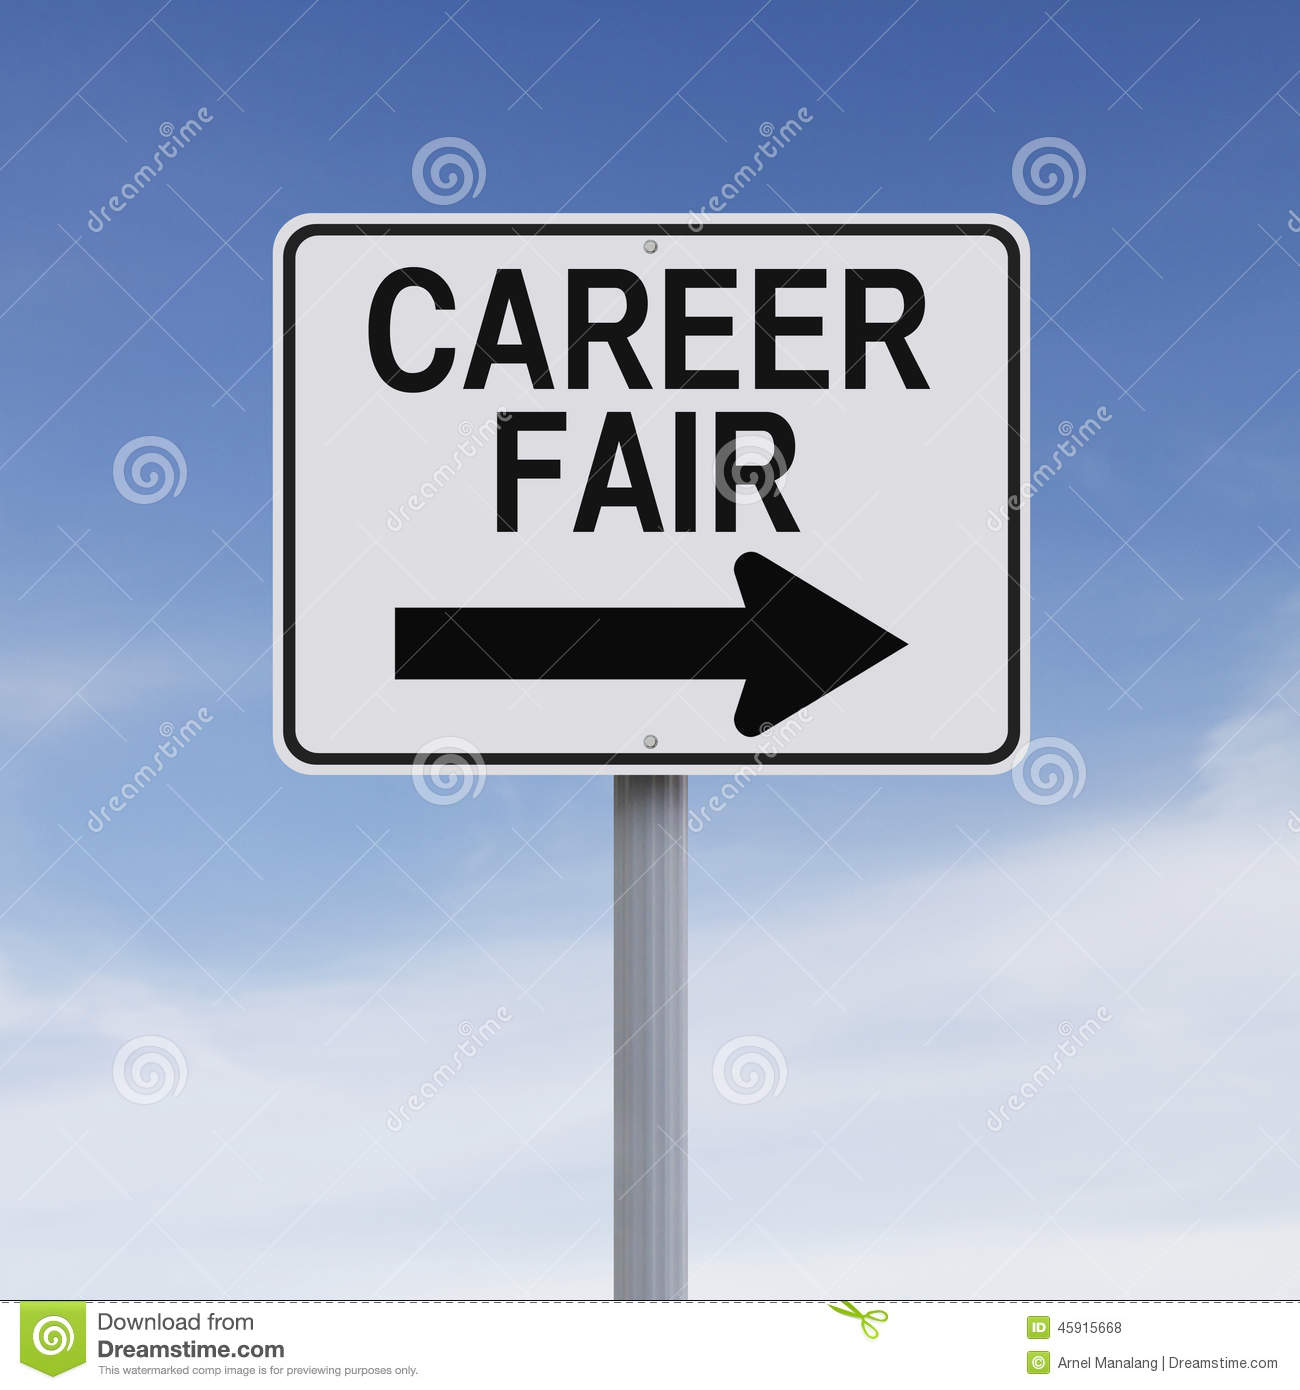 How to Plan a Career Fair